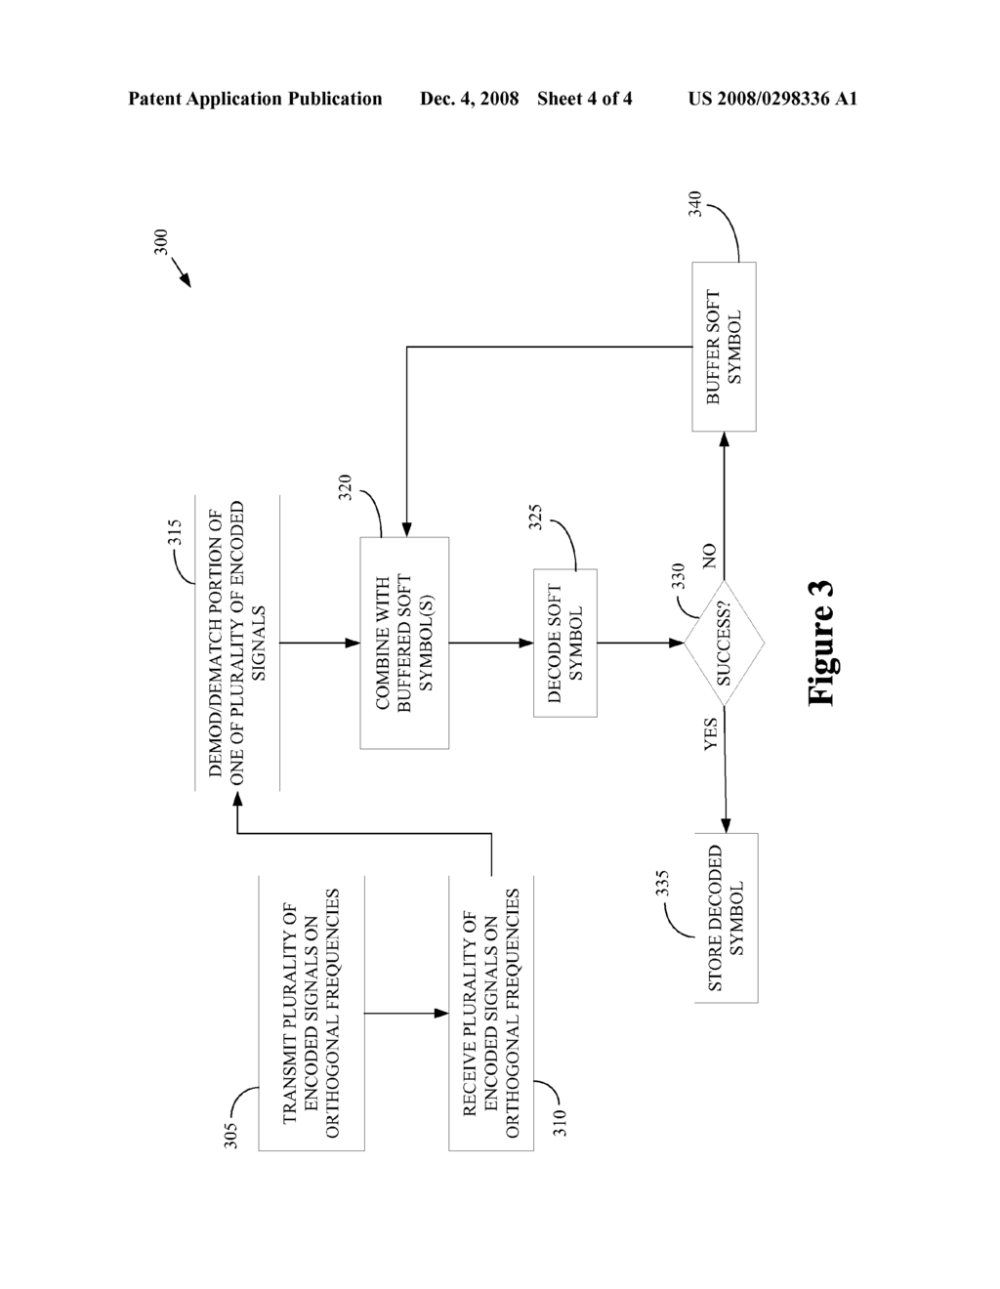 medium resolution of macro diversity technique for multicast transmission in a wireless communication system diagram schematic and image 05